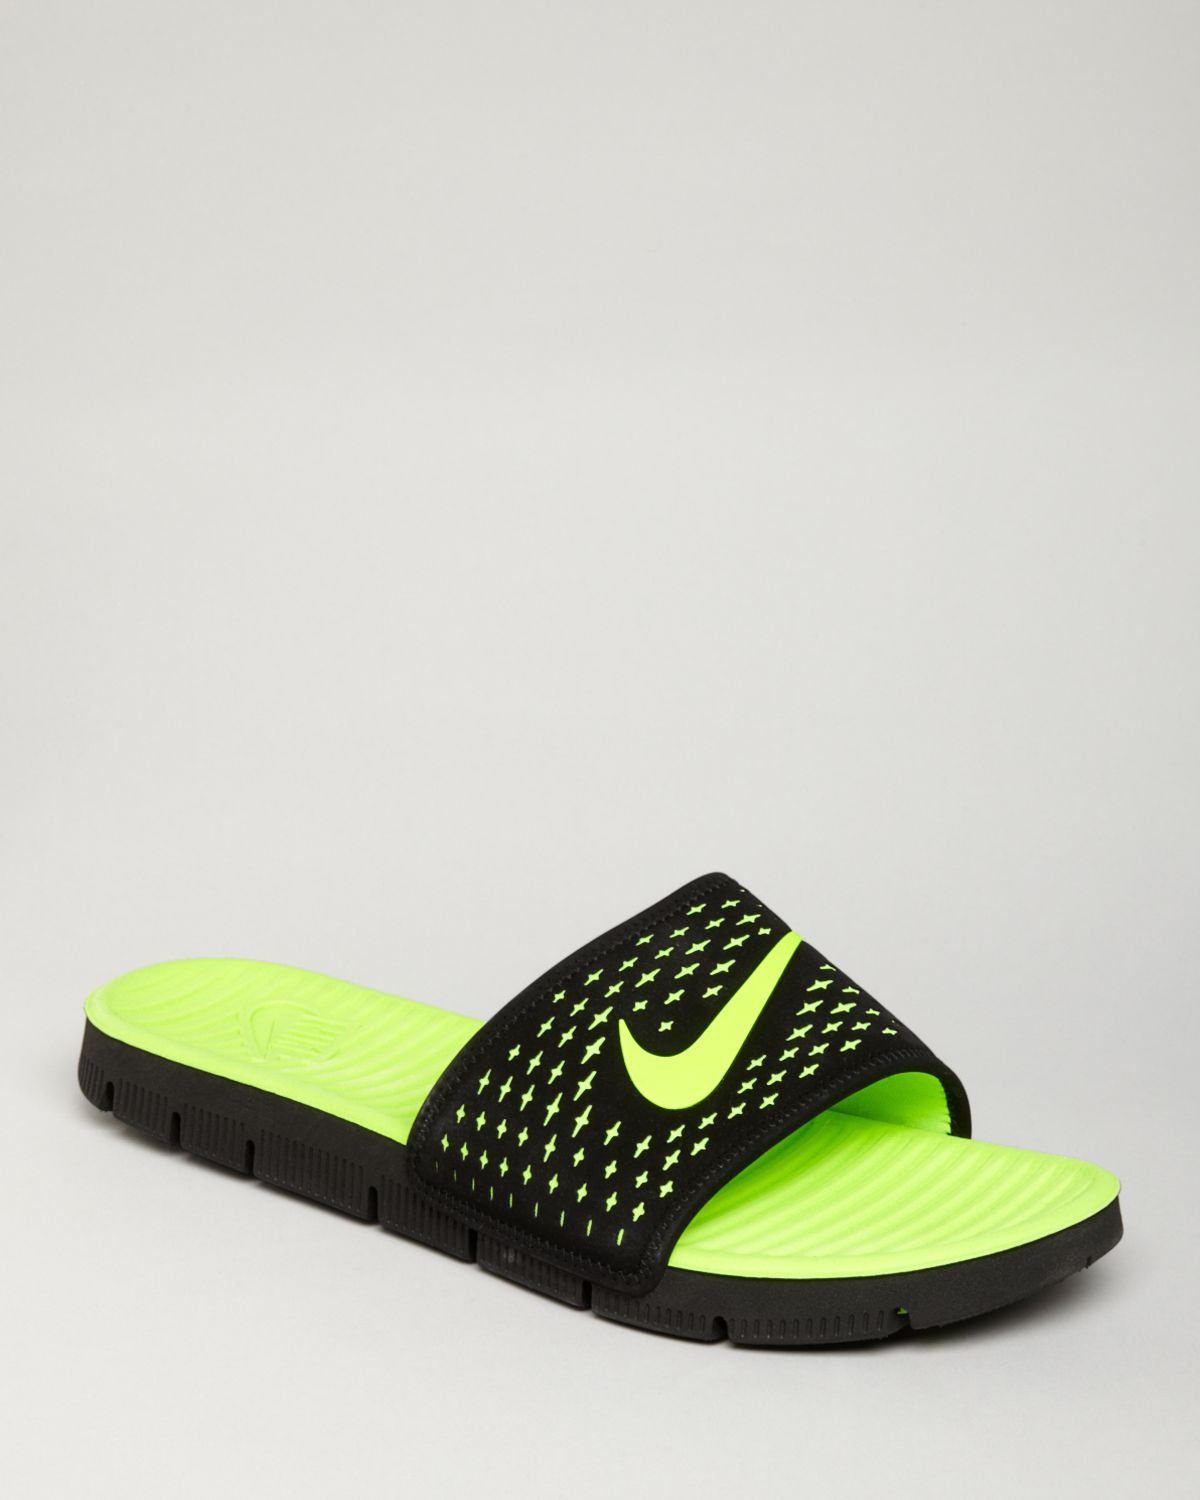 513e848997f2 Lyst - Nike Celso Motion Slide Flip Flops in Green for Men